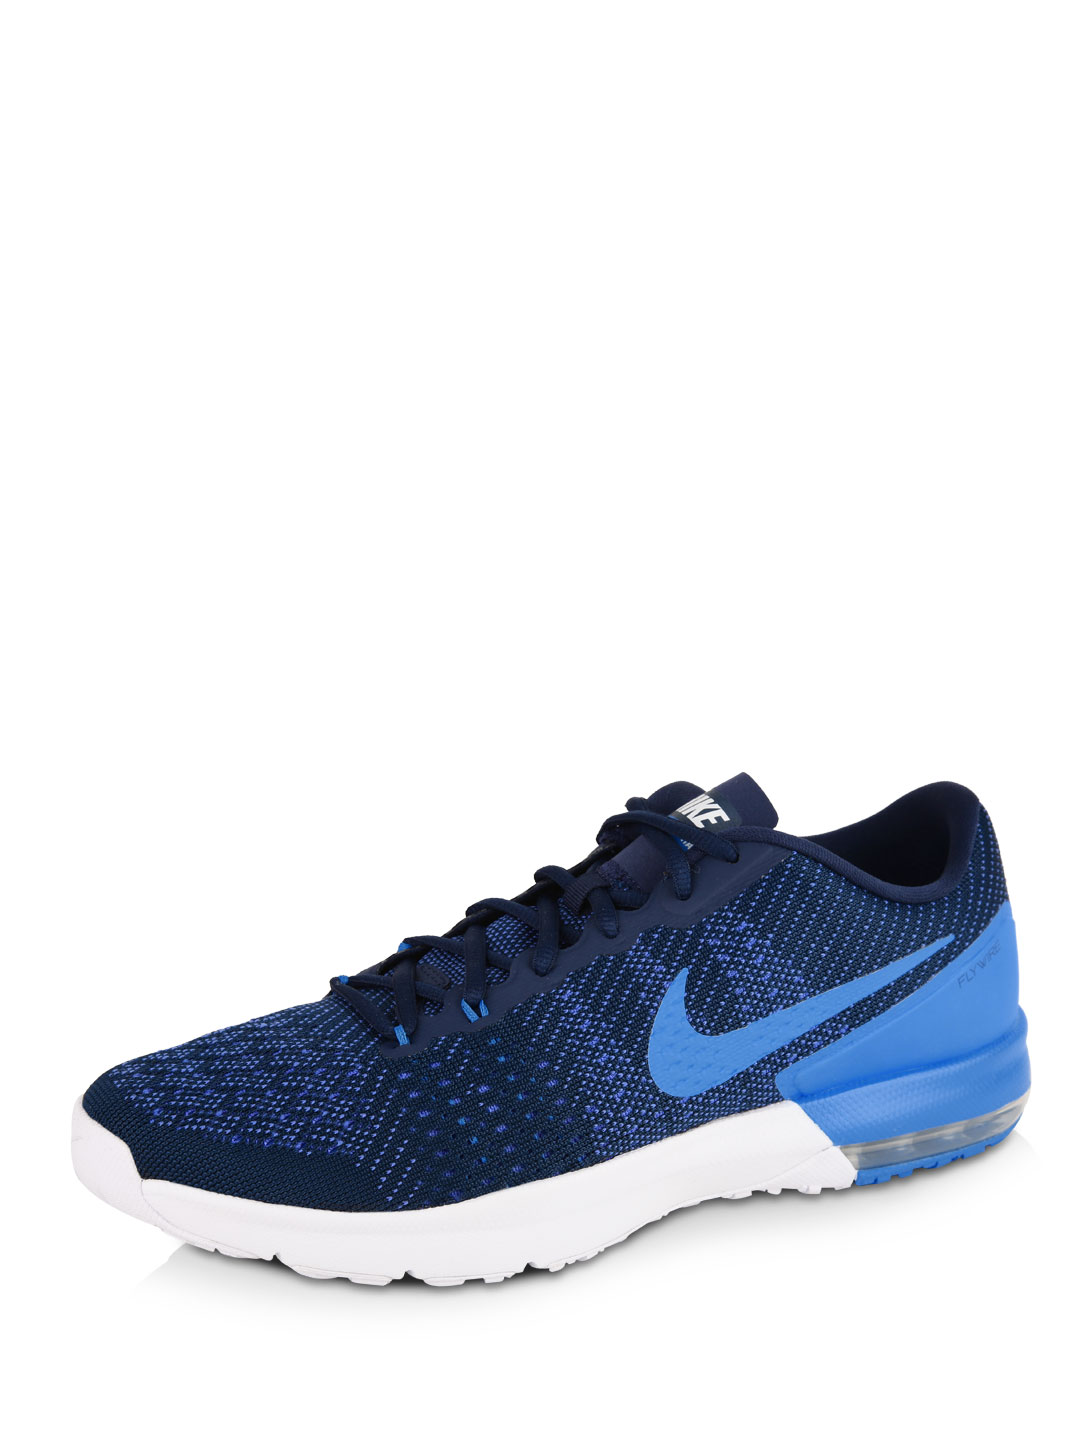 Nike Navy/Blue/White Air Max Typha Trainers 1